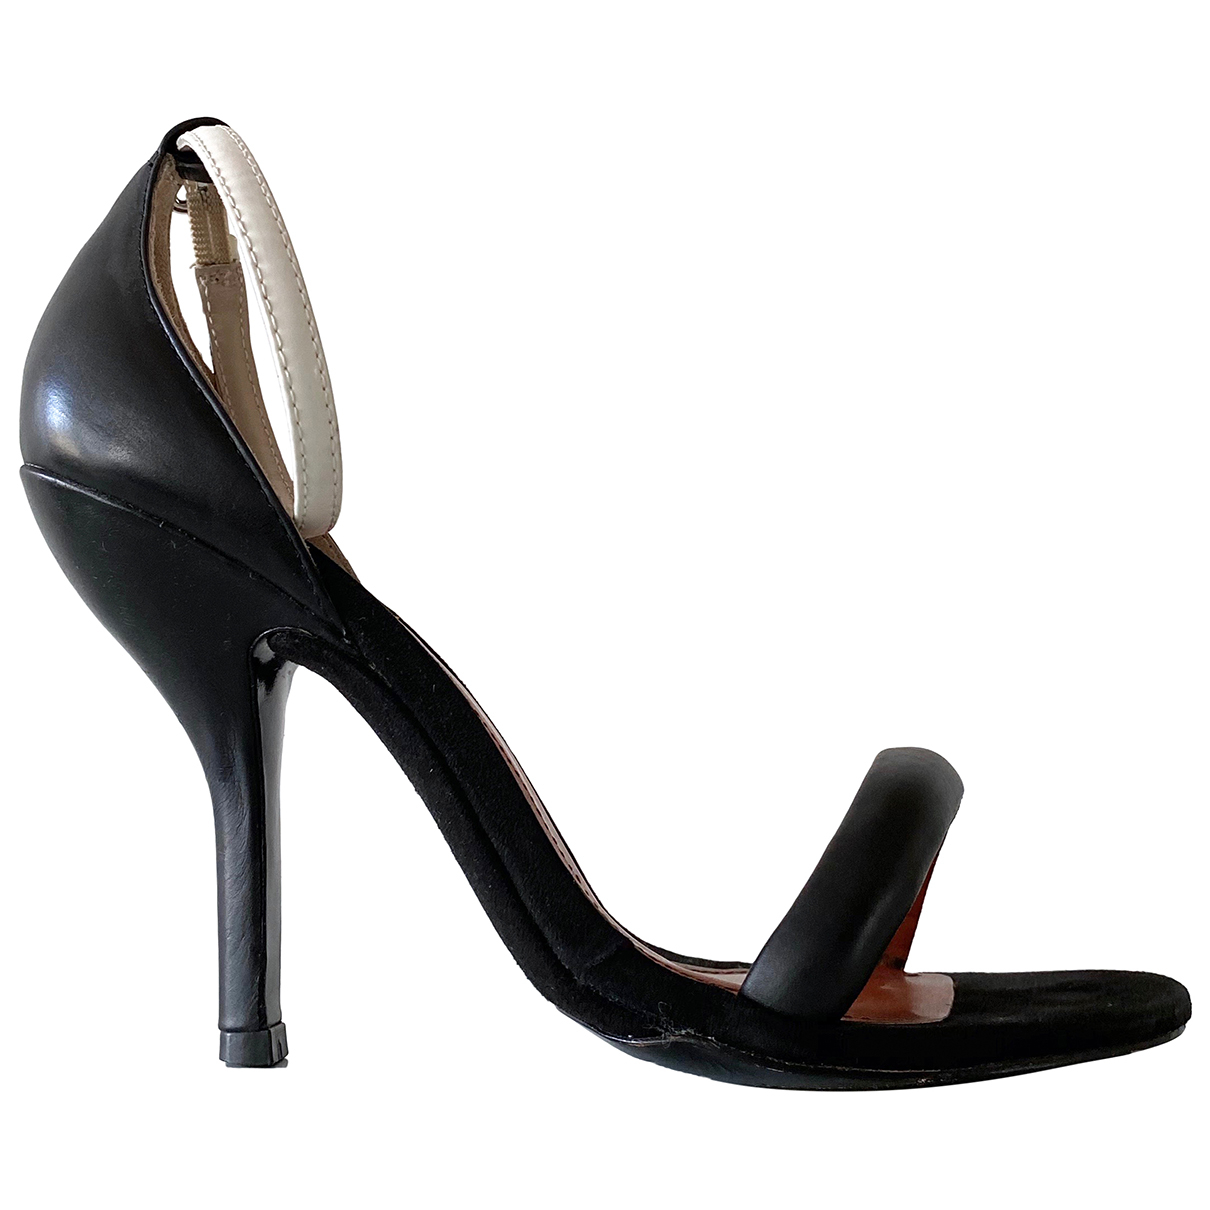 Bimba Y Lola N Black Leather Heels for Women 38 EU